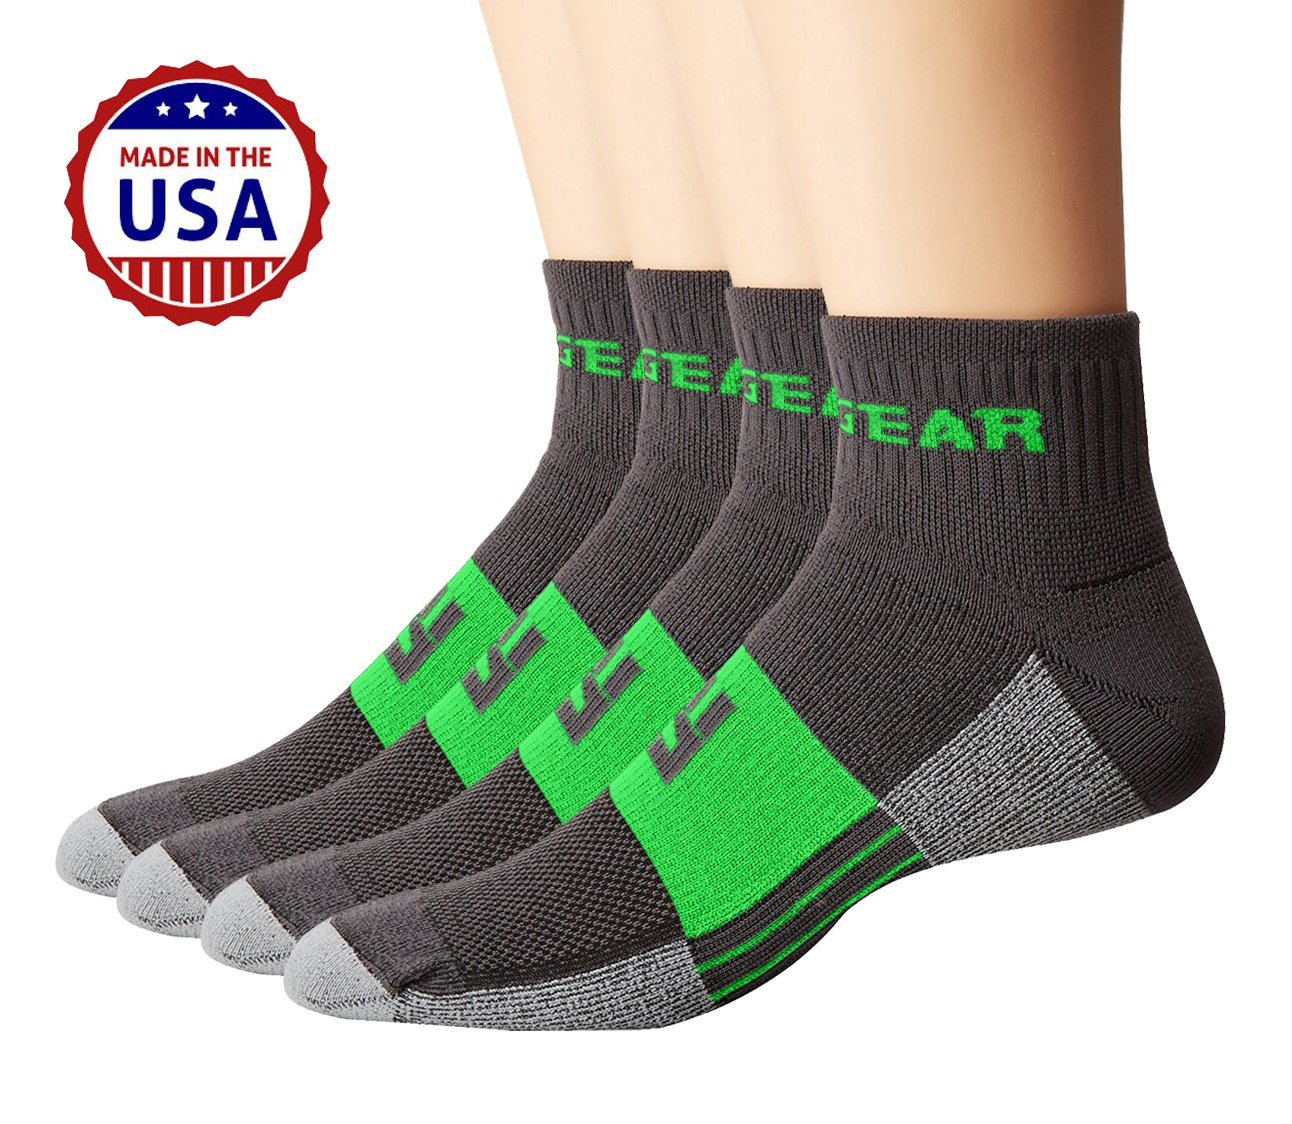 socks most comfortable dot dp com for comforter advanced running quarter wicking and sport moisture padding athletic amazon sports cycling